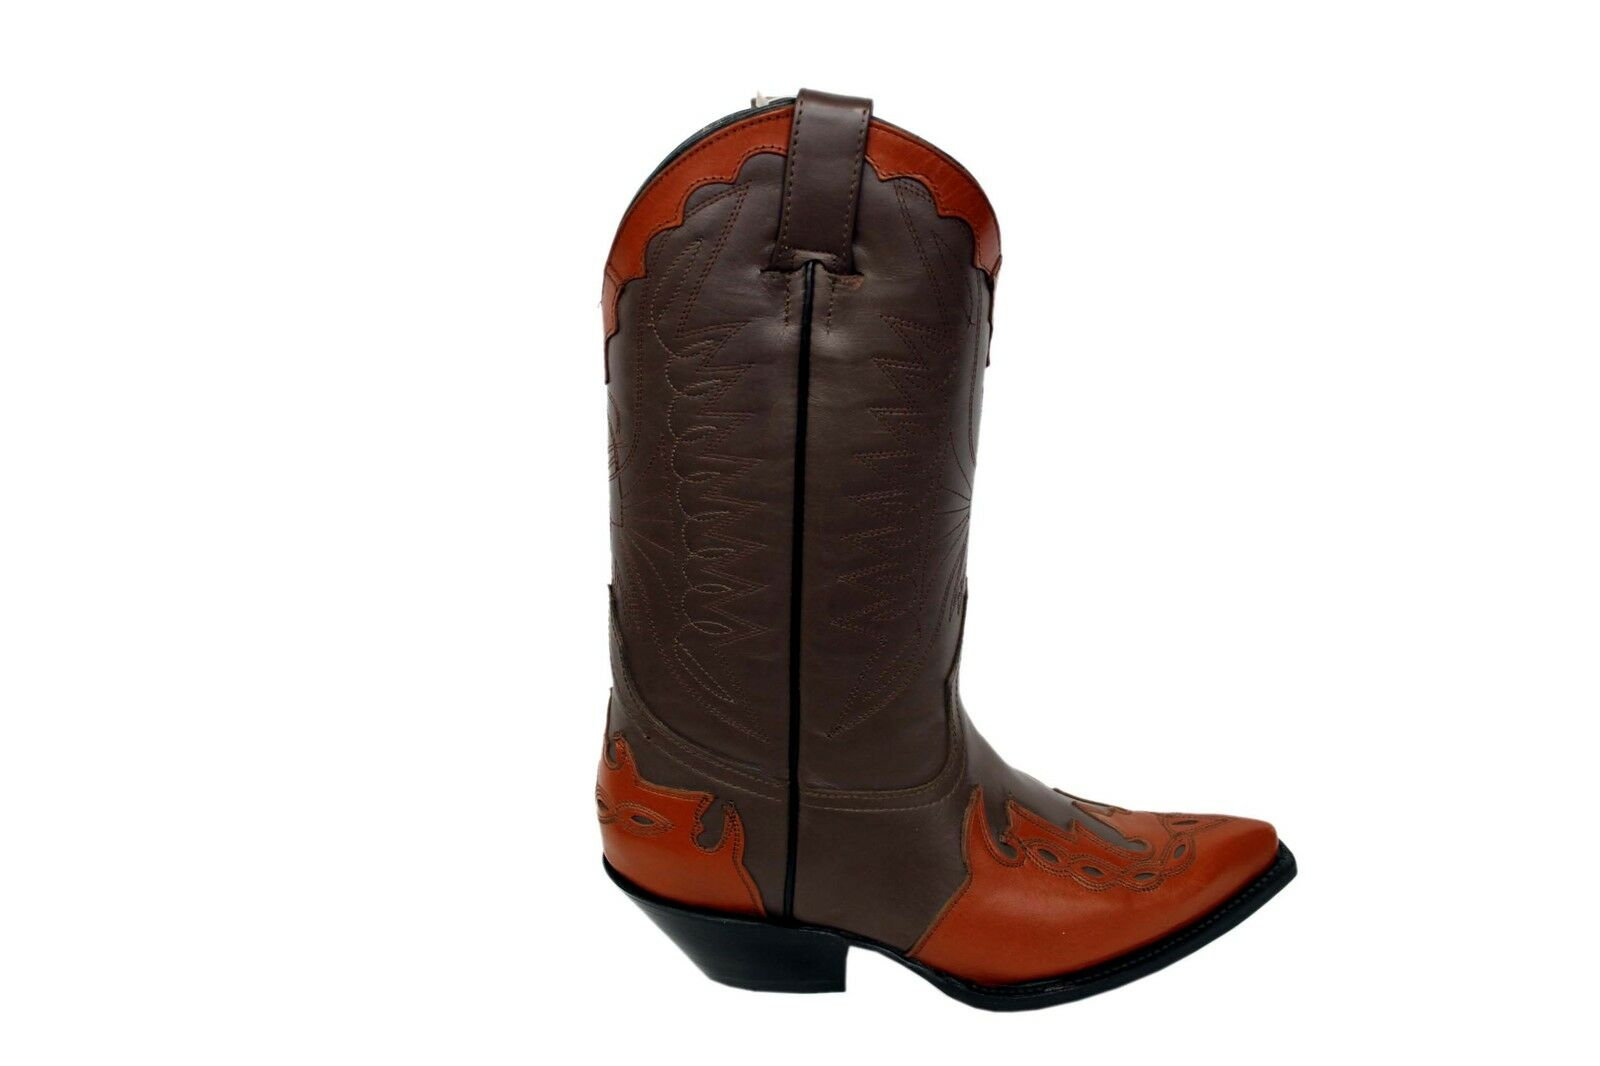 Grinders Arizona Brown   Tan Leather Boot Cowboy Western Slip On Pointed Boots